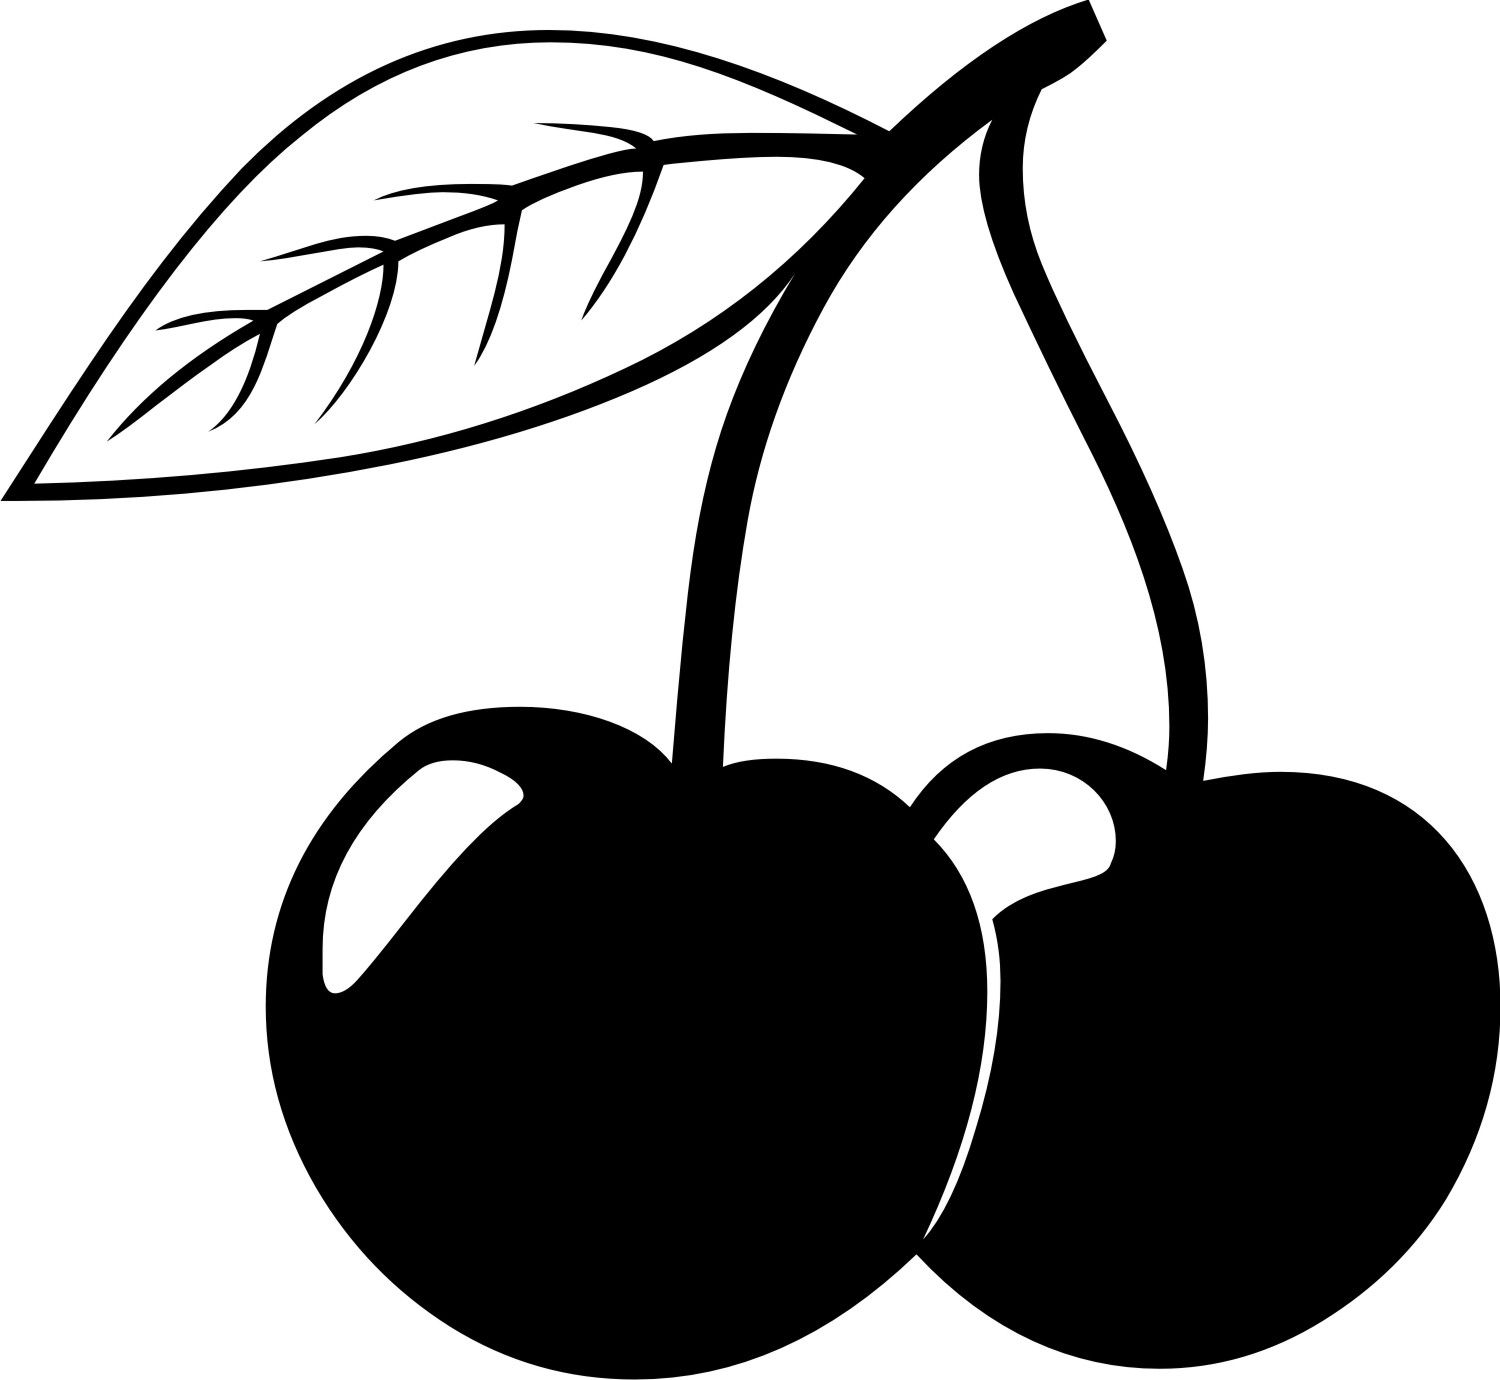 Black and white cherries clipart clip freeuse download Cherry | silhouette | Cherry tattoos, Cherry drawing, Strawberry tattoo clip freeuse download